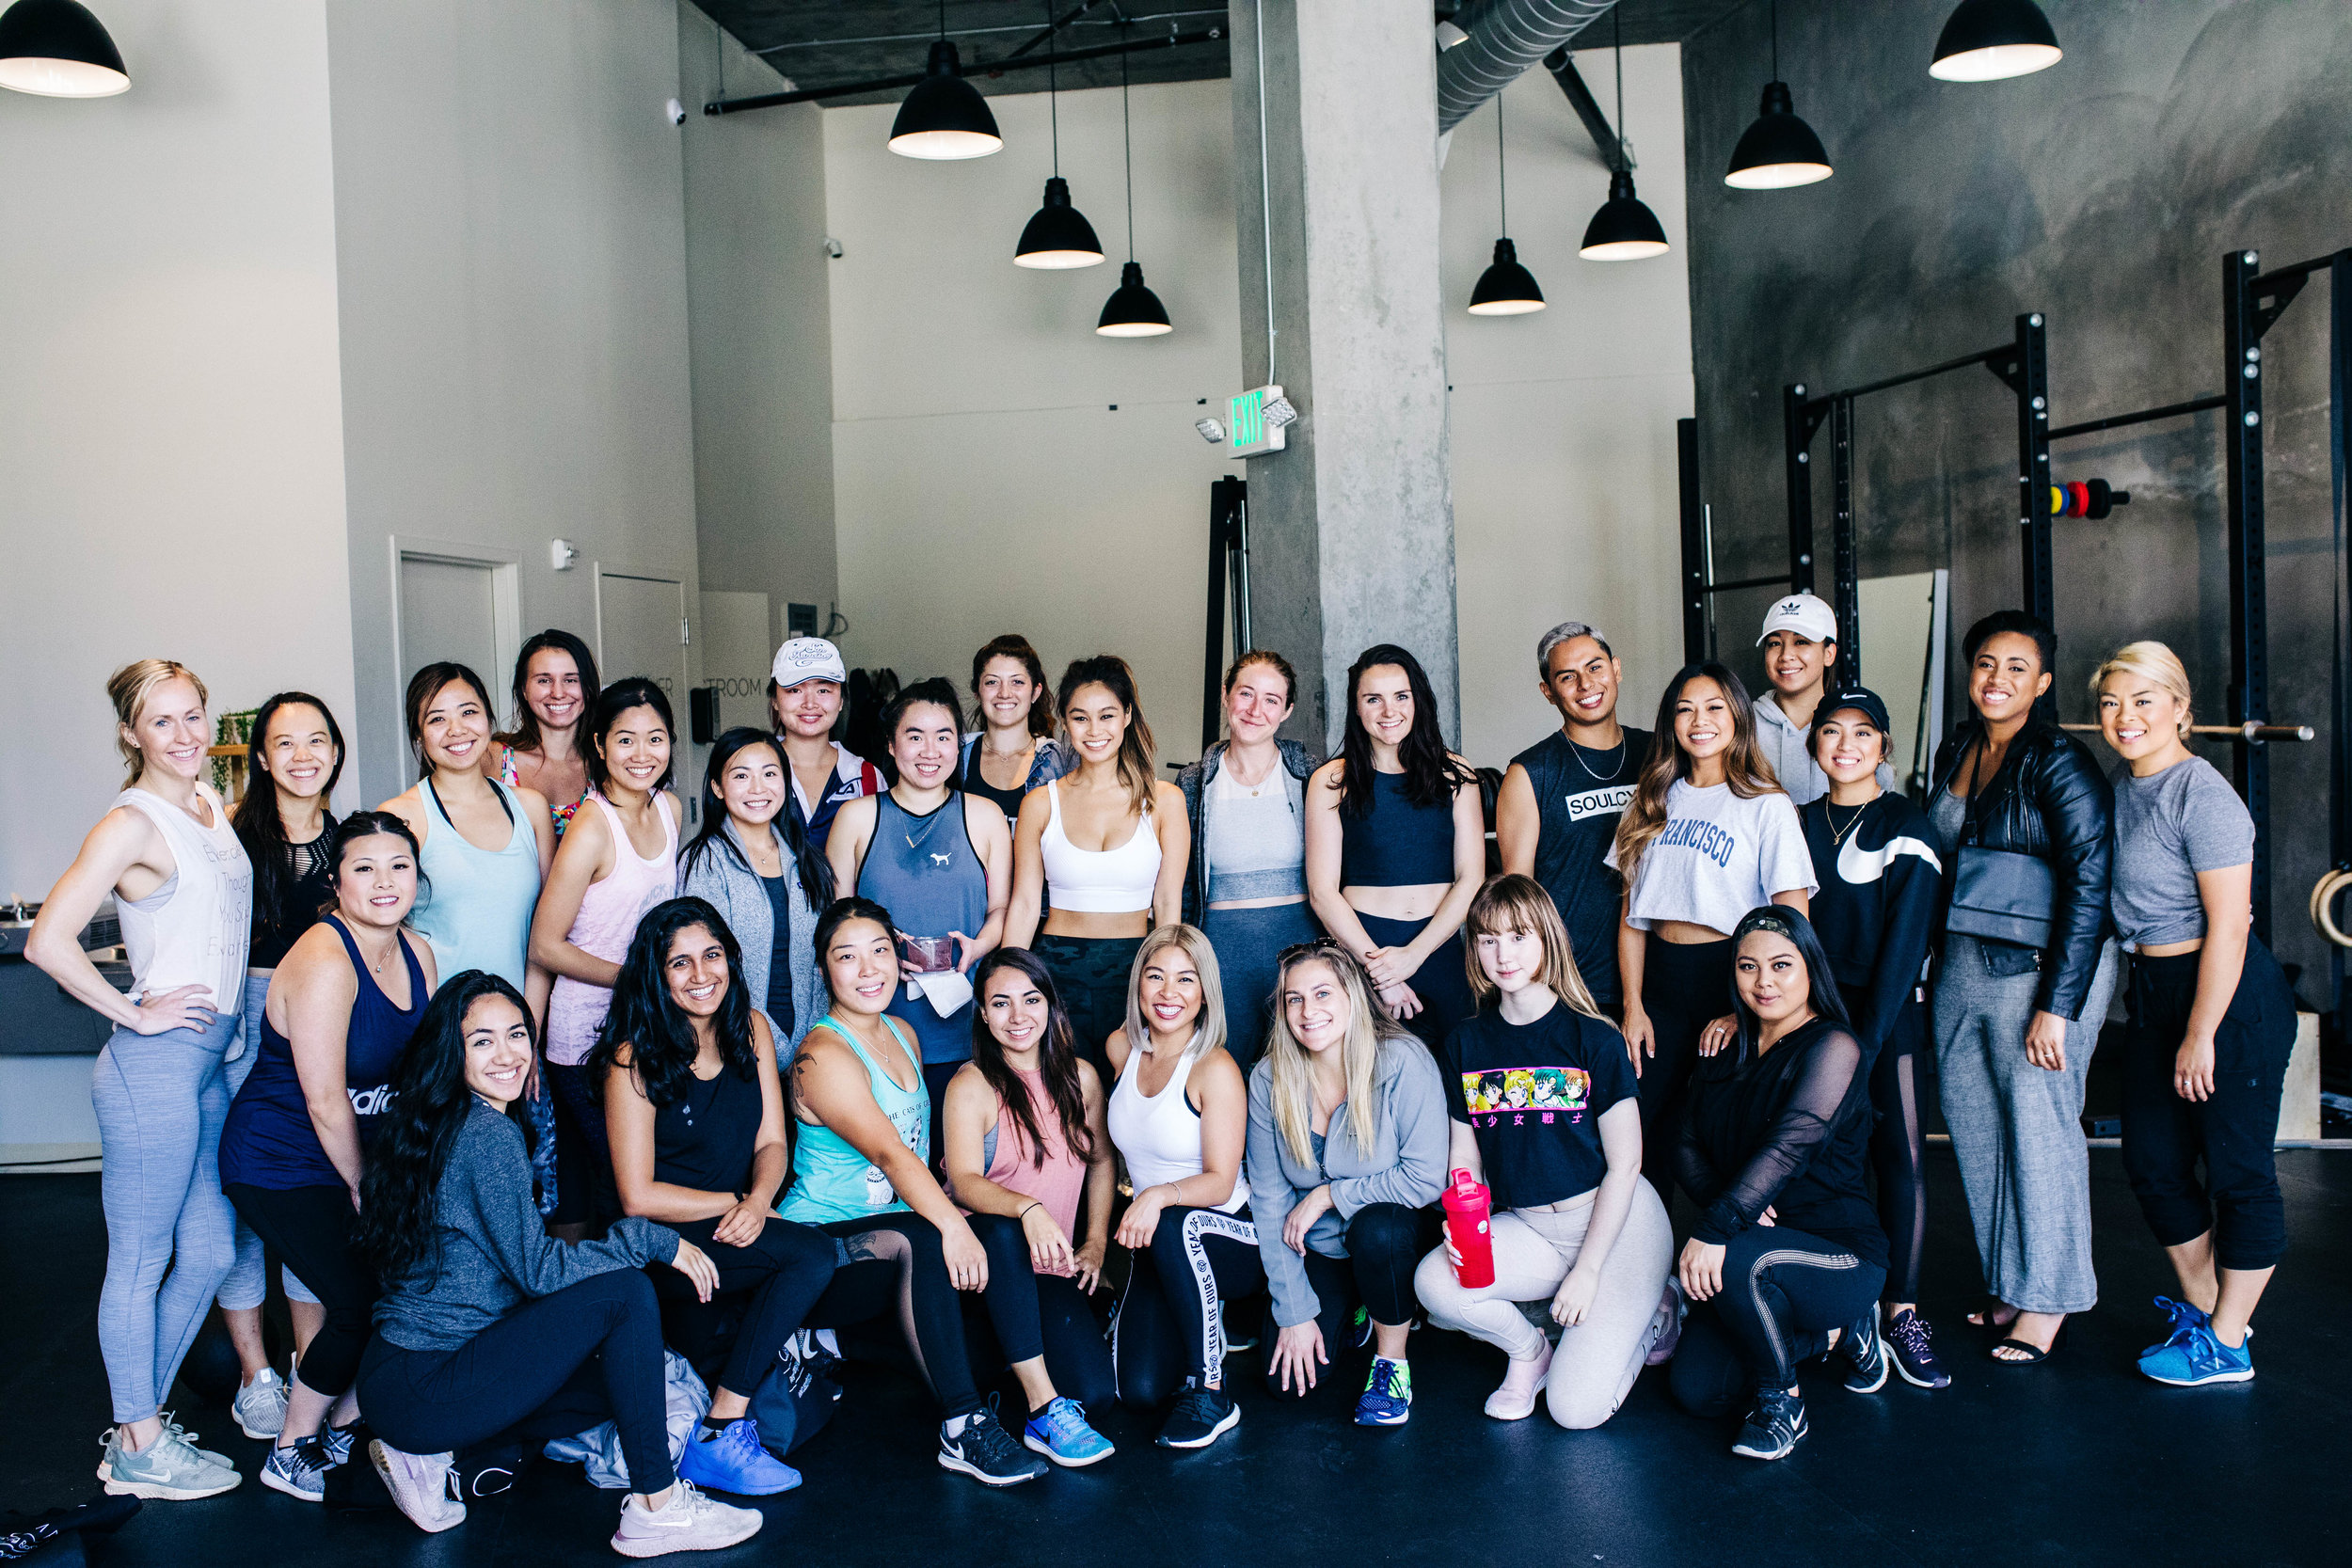 Strong Babes Workout Event    November 4th, 2018